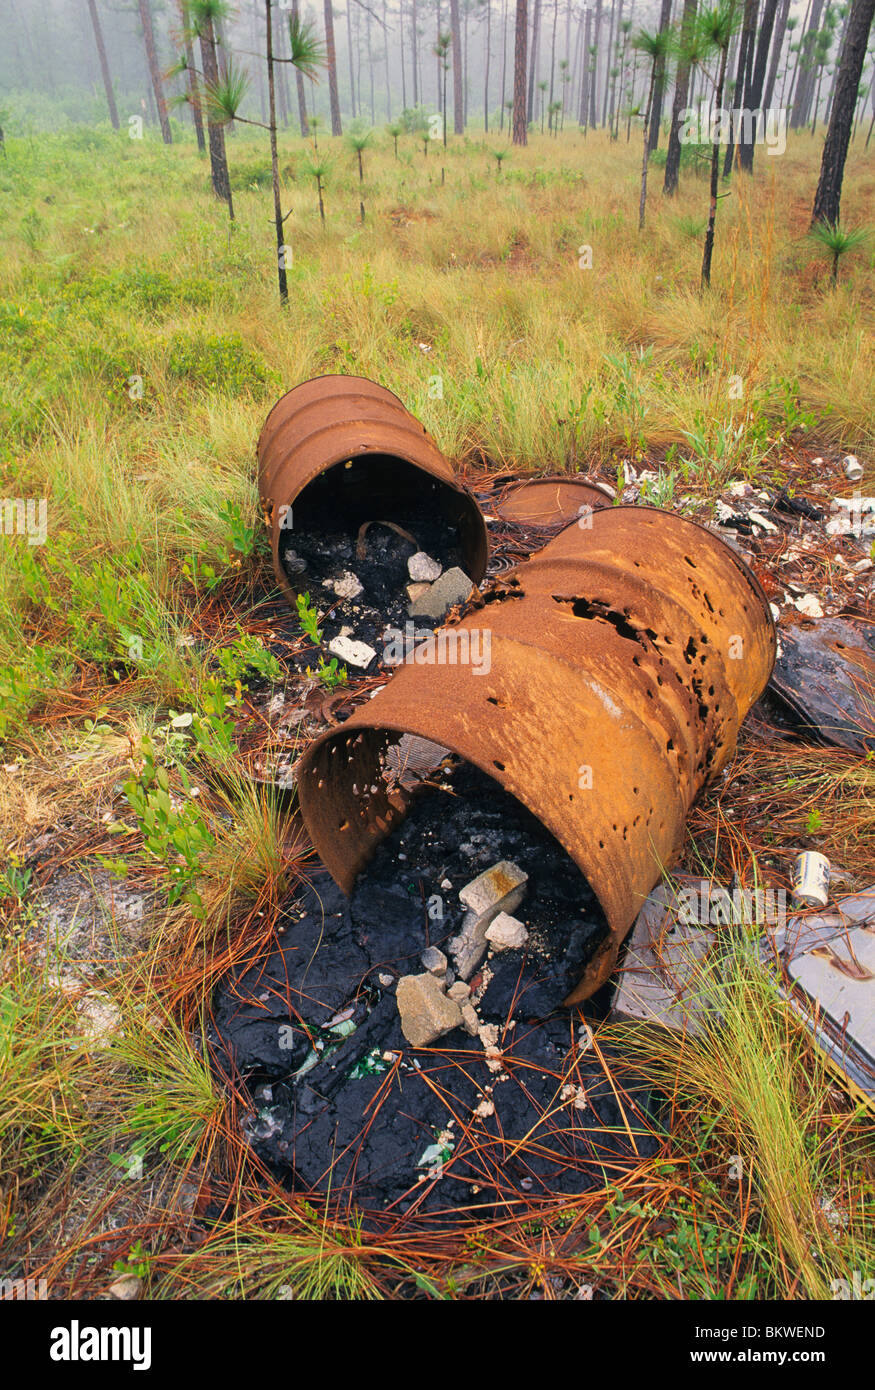 Illegal dumping of trash barrels in a Pine Forest Southeastern United States - Stock Image